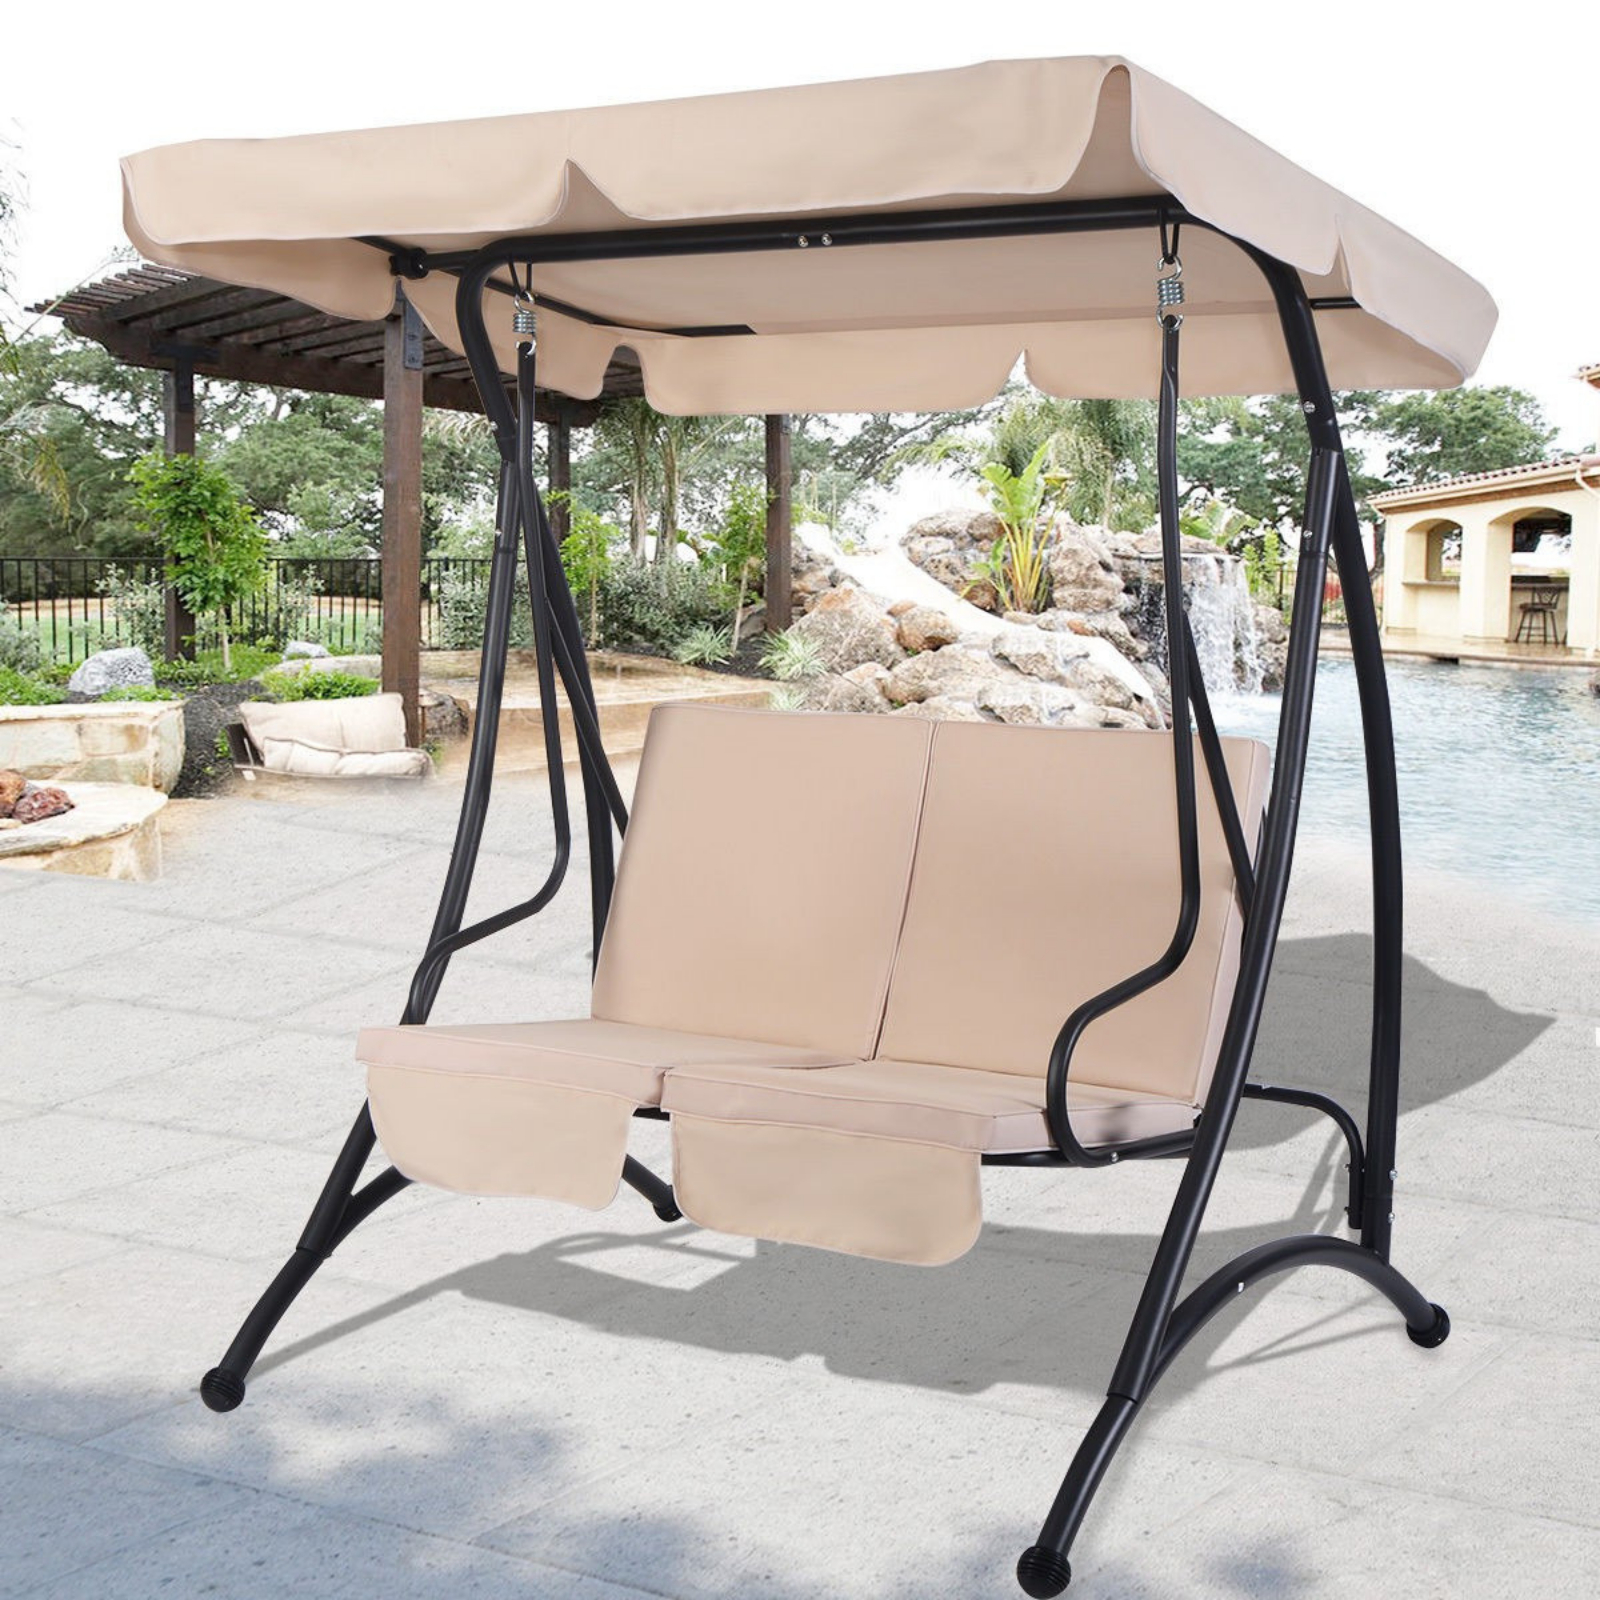 Outdoor Swing With Canopy 2 Person Patio Porch Steel Swing Double Hanging Seat Inside Most Recent Canopy Patio Porch Swing With Stand (View 6 of 25)